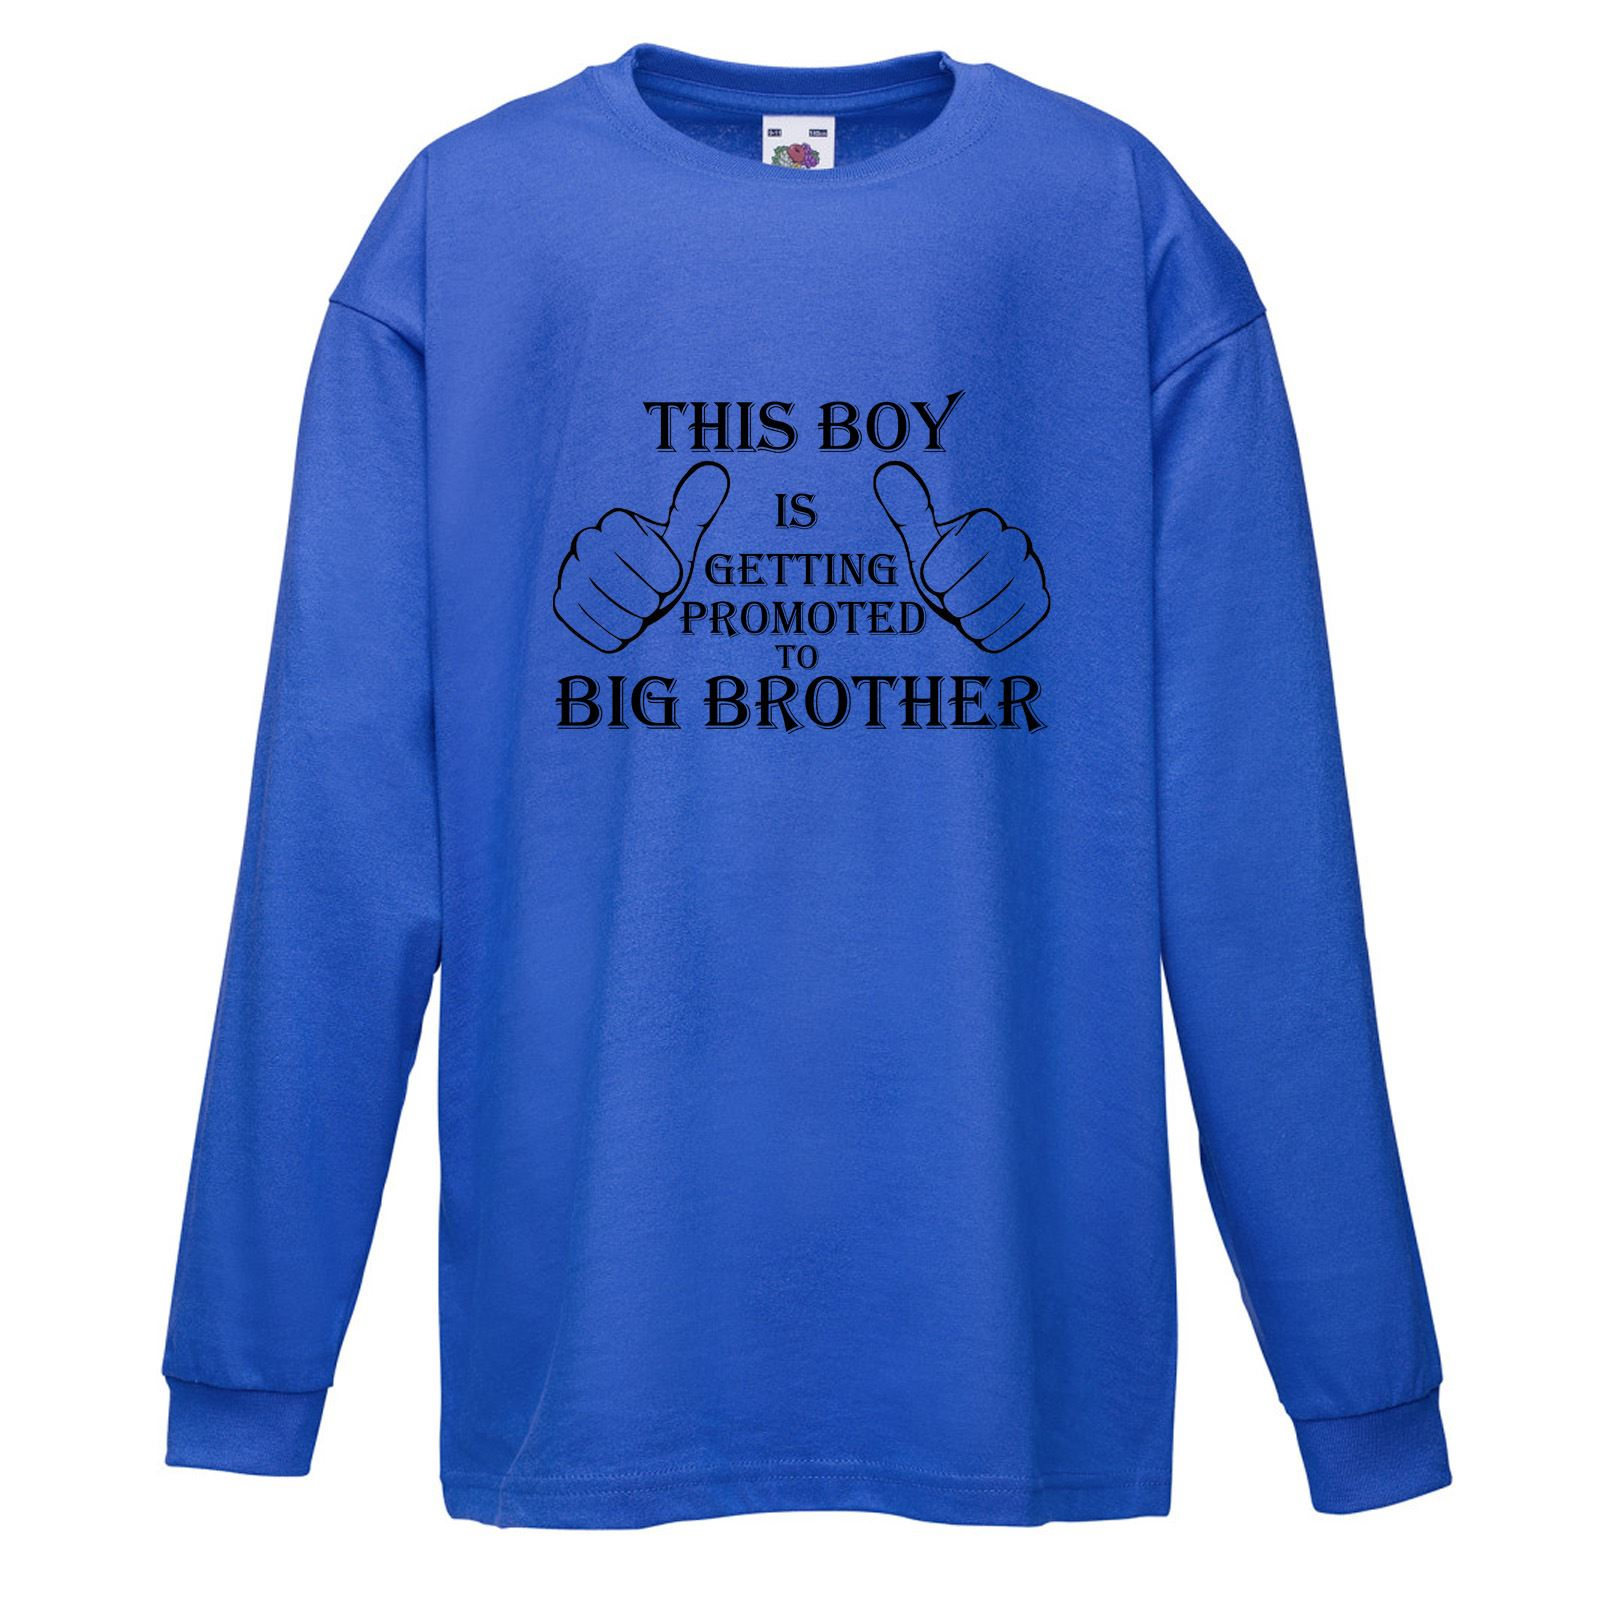 kids funny sayings slogans t shirts promoted to big brother tshirt kids funny sayings slogans t shirts promoted to